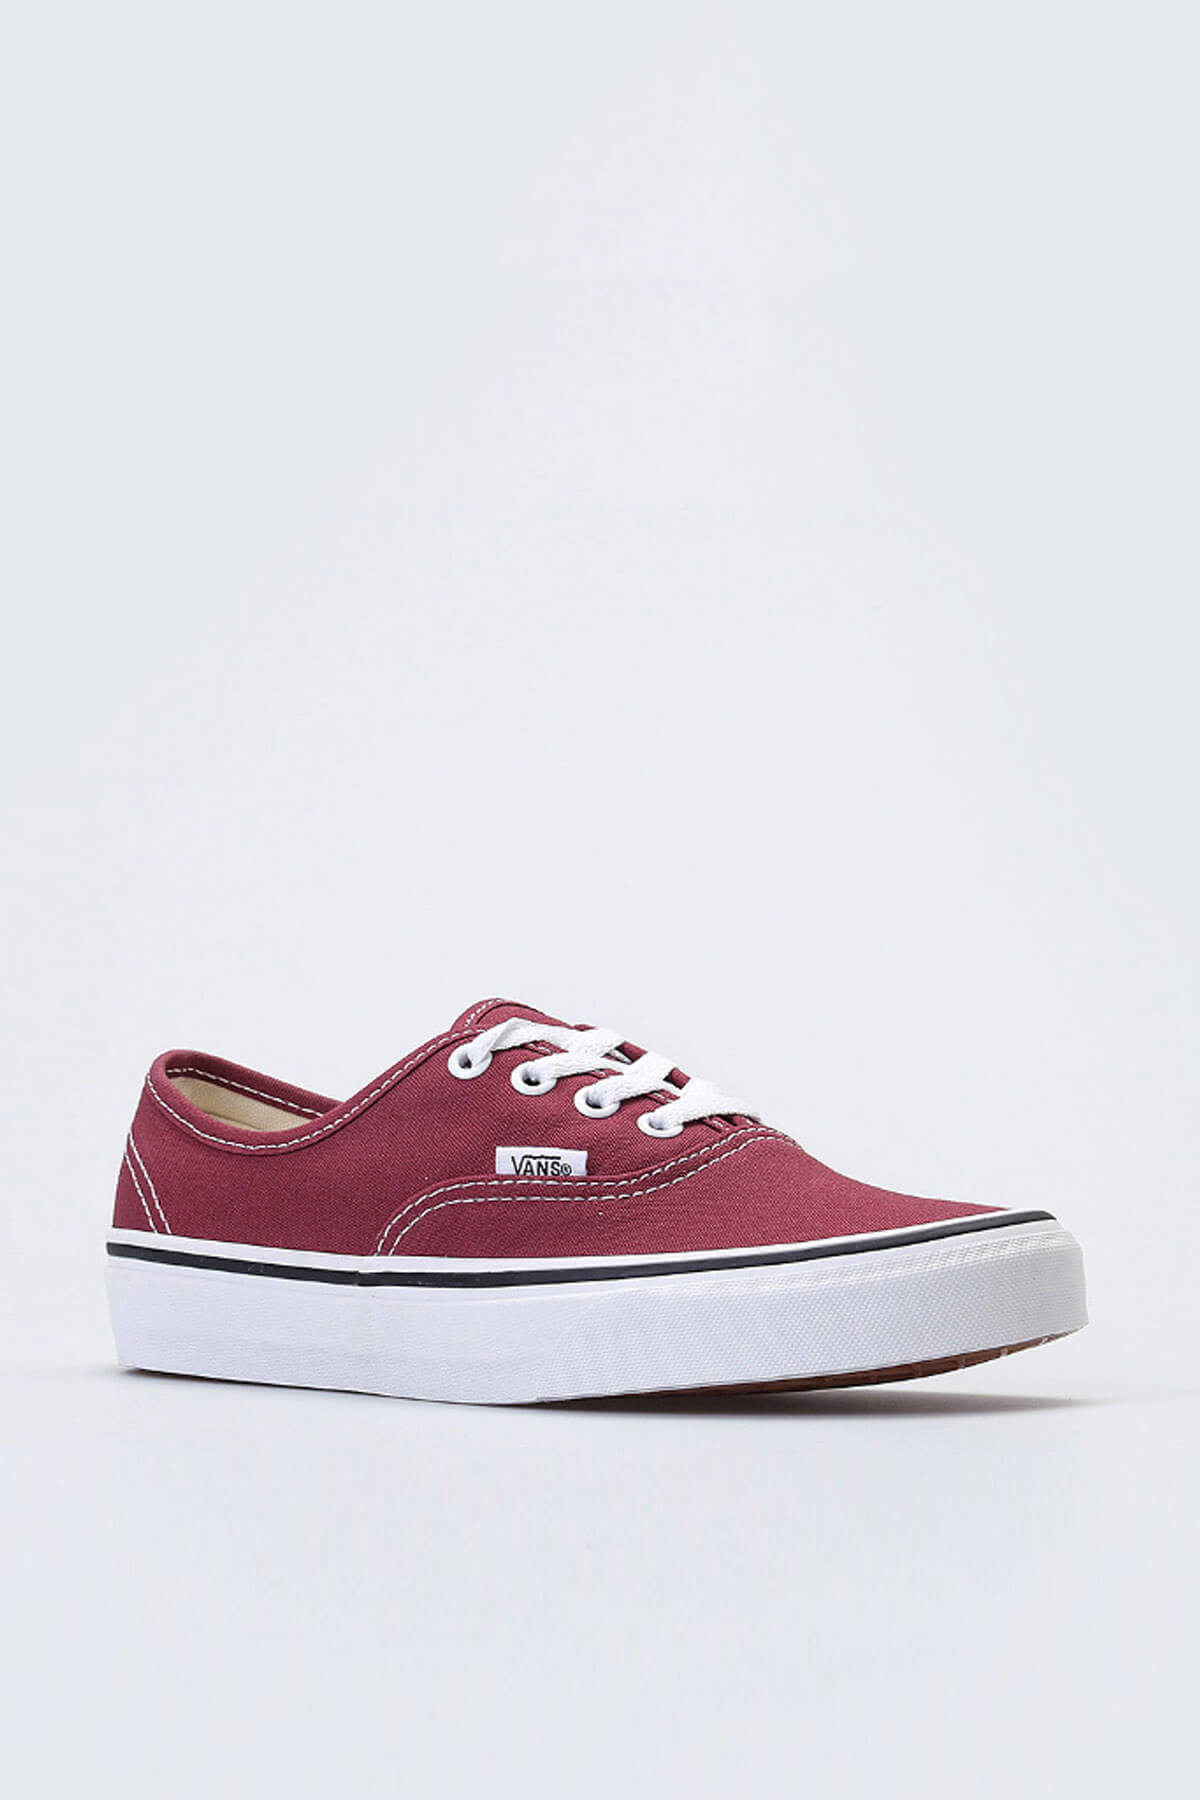 30bb084a8b Vans Authentic - Va38emq9s Ürün Resmi